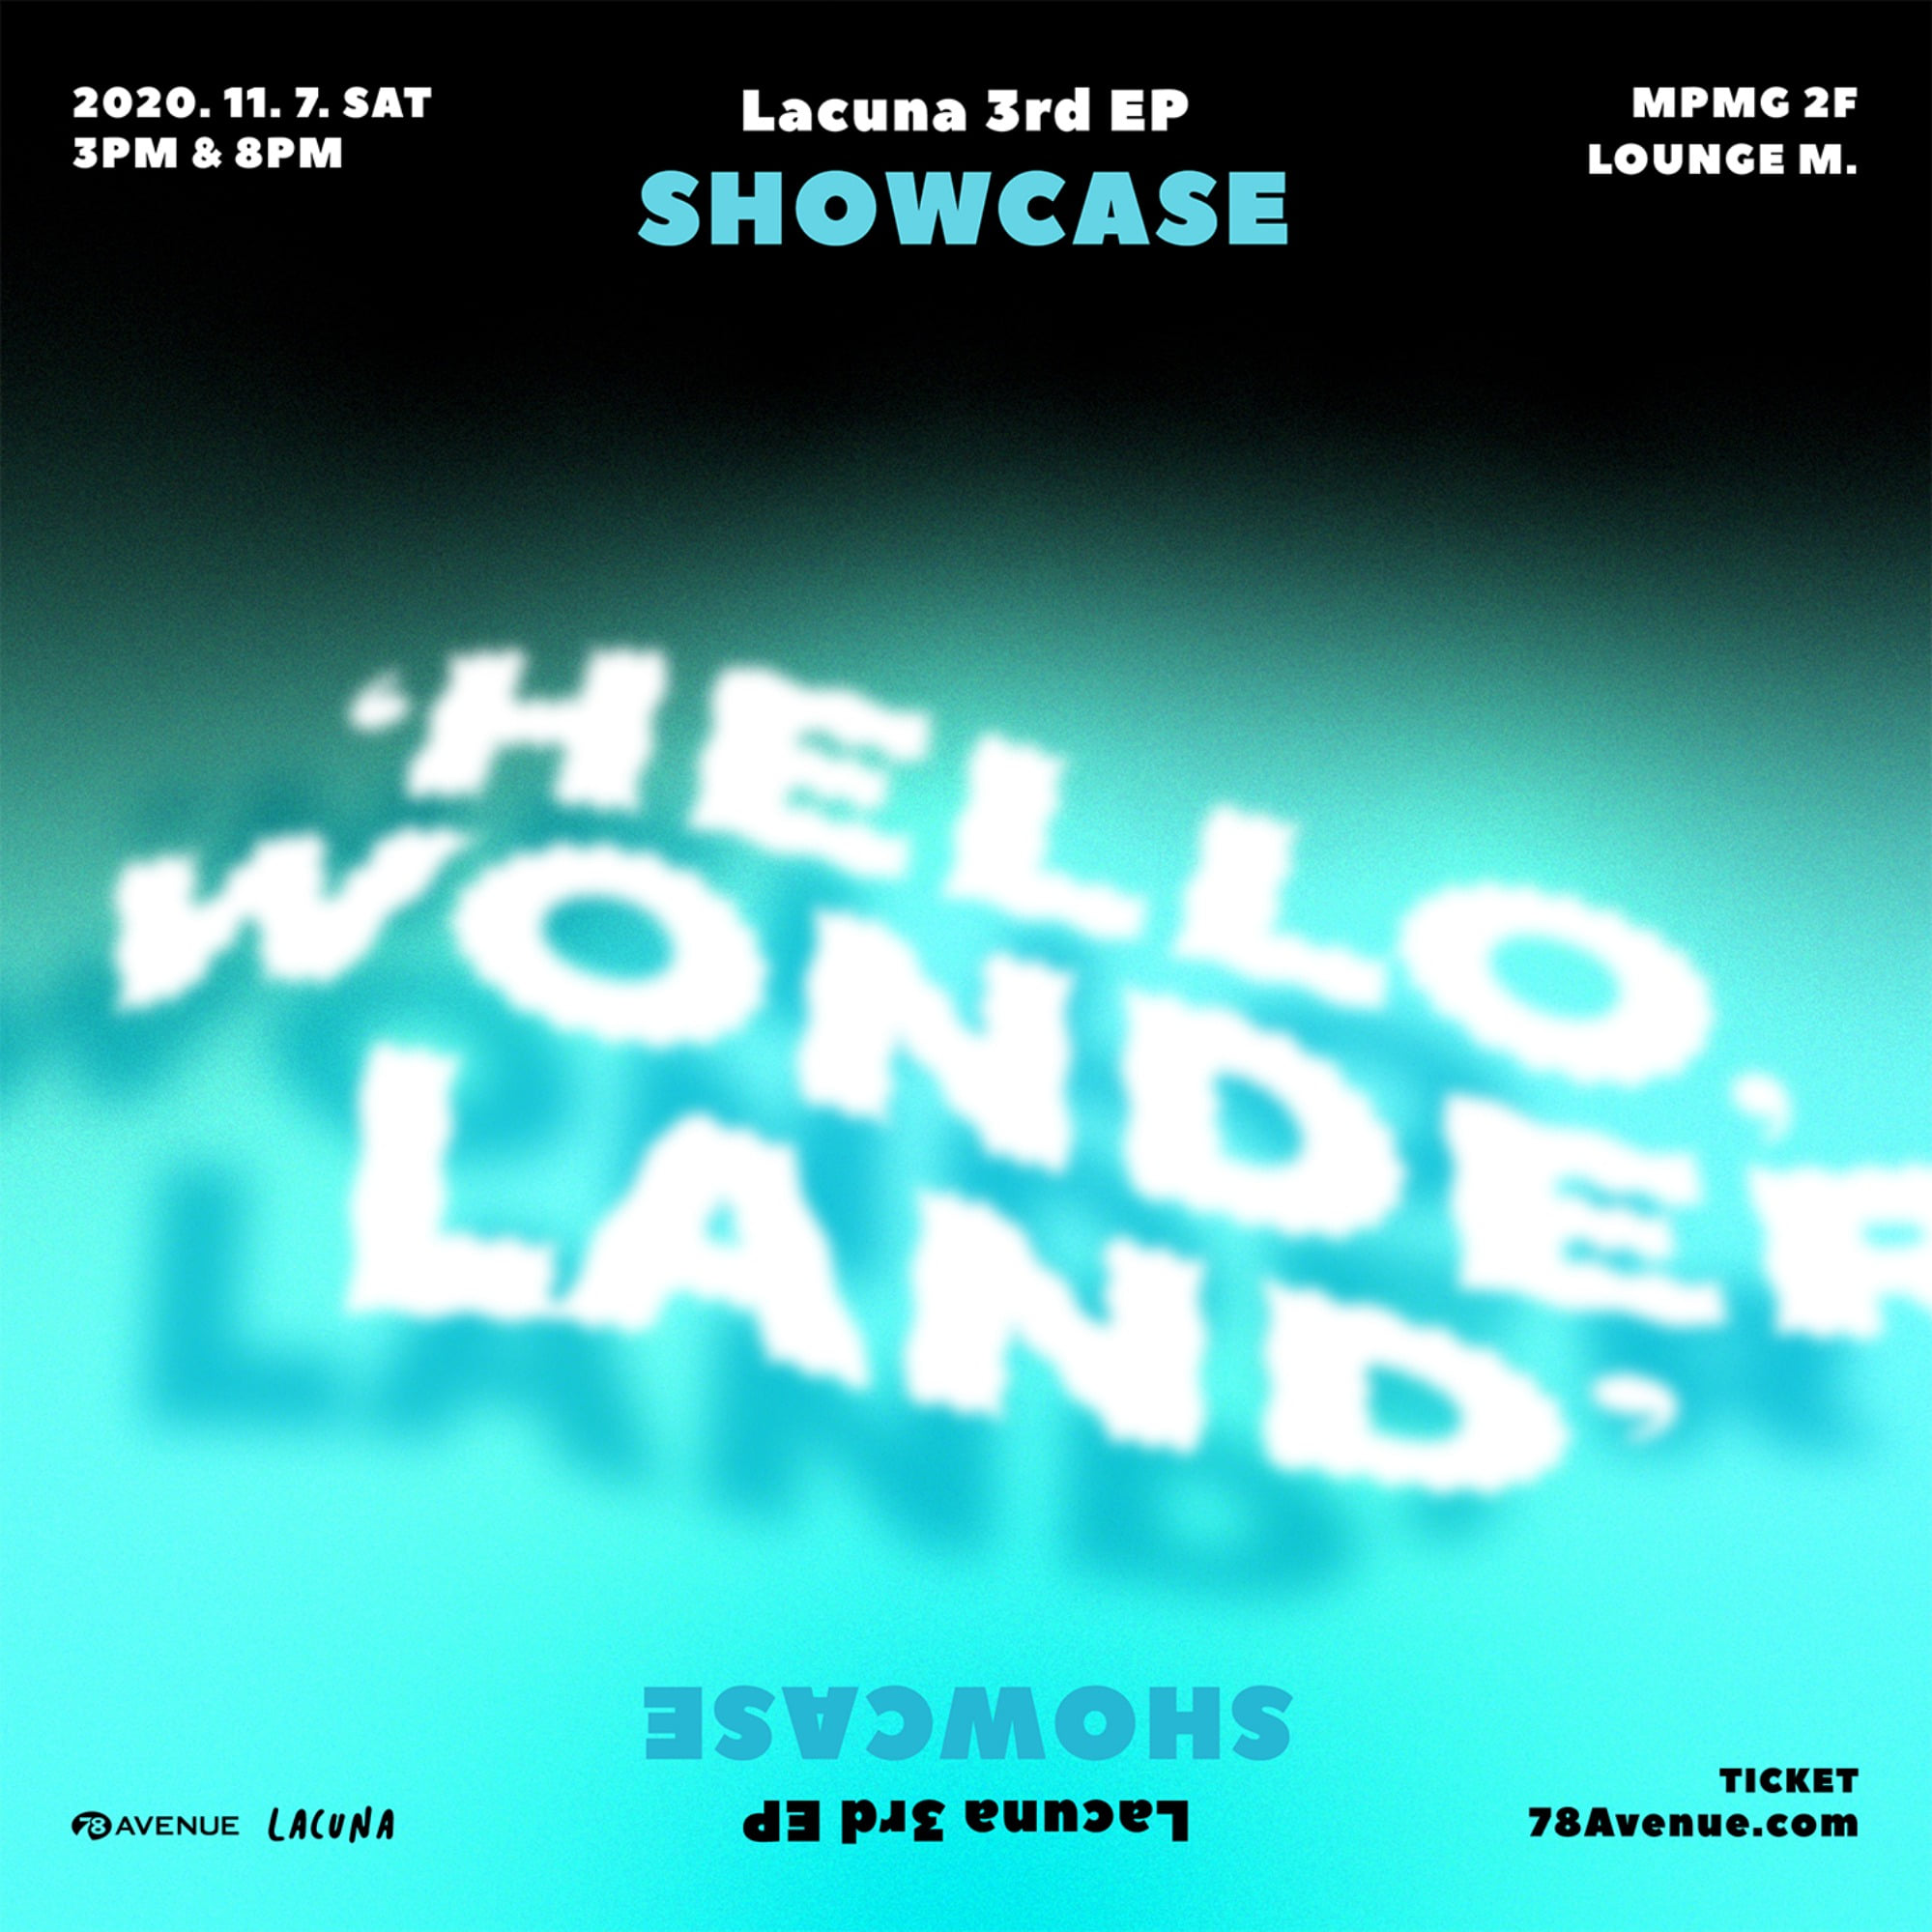 [2020.11.07] Lacuna 3rd EP 'Hello, Wonderland' Showcase - 오후 8시 공연